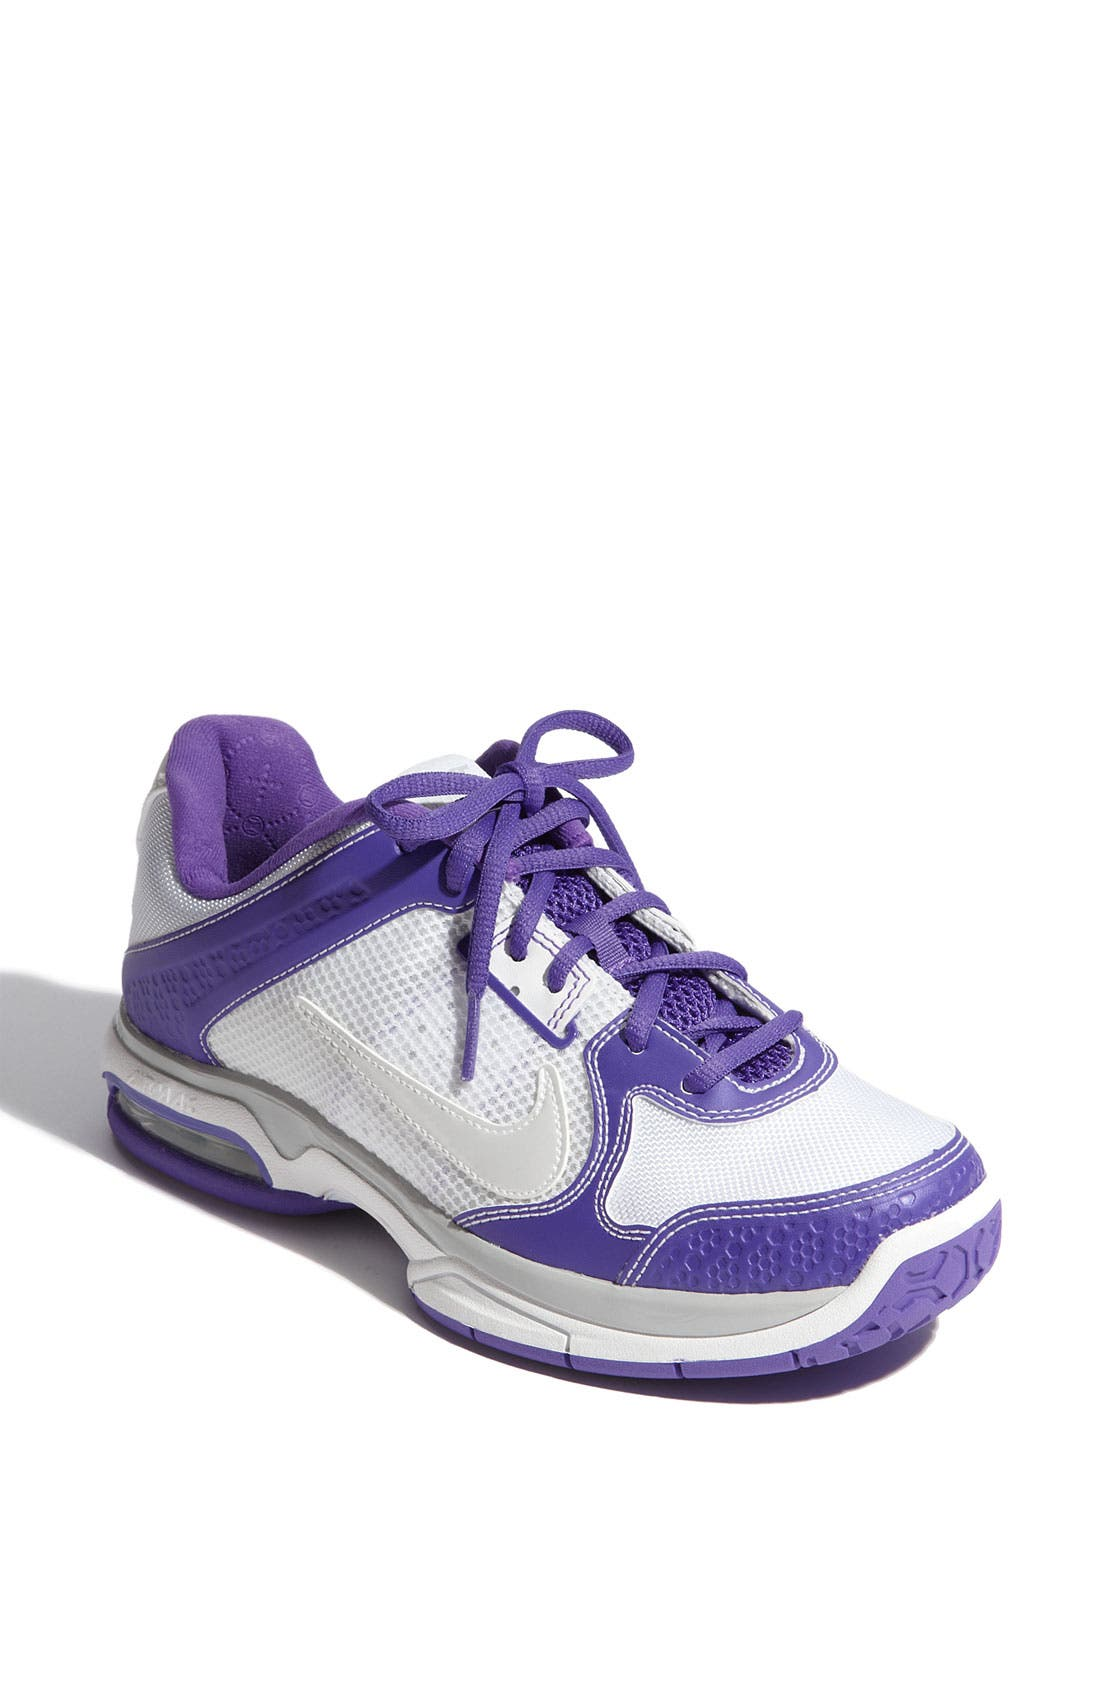 Main Image - Nike 'Air Max Mirabella 3' Tennis Shoe (Women)